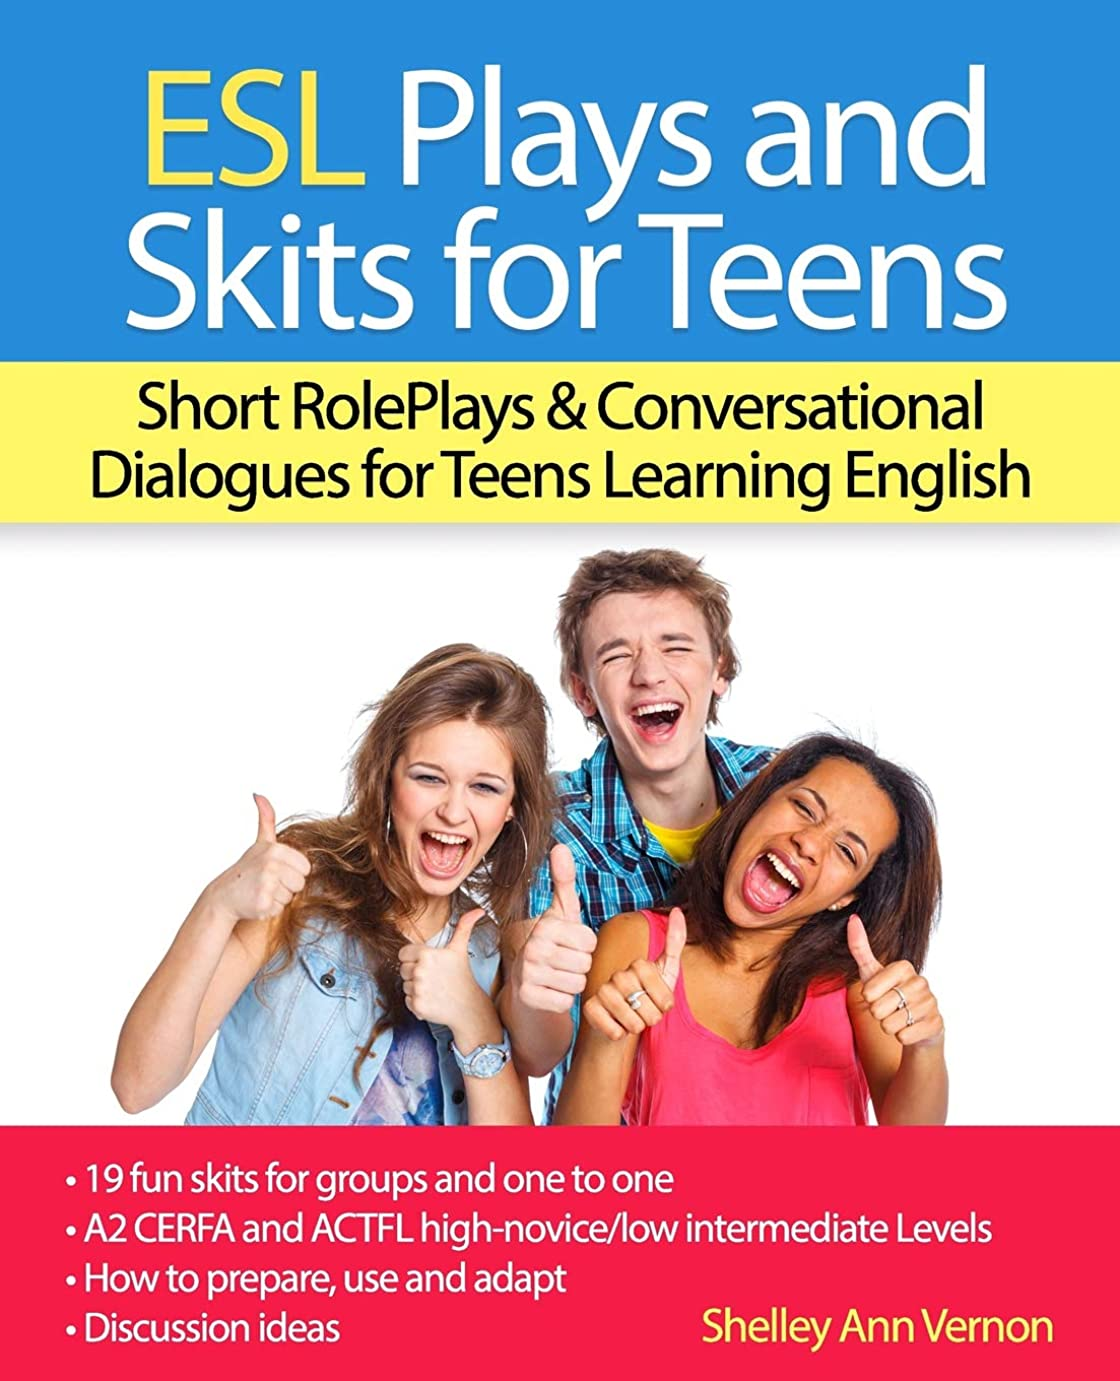 高度サドル日常的にESL Plays and Skits for Teens: Short RolePlays & Conversational Dialogues for Teens Learning English